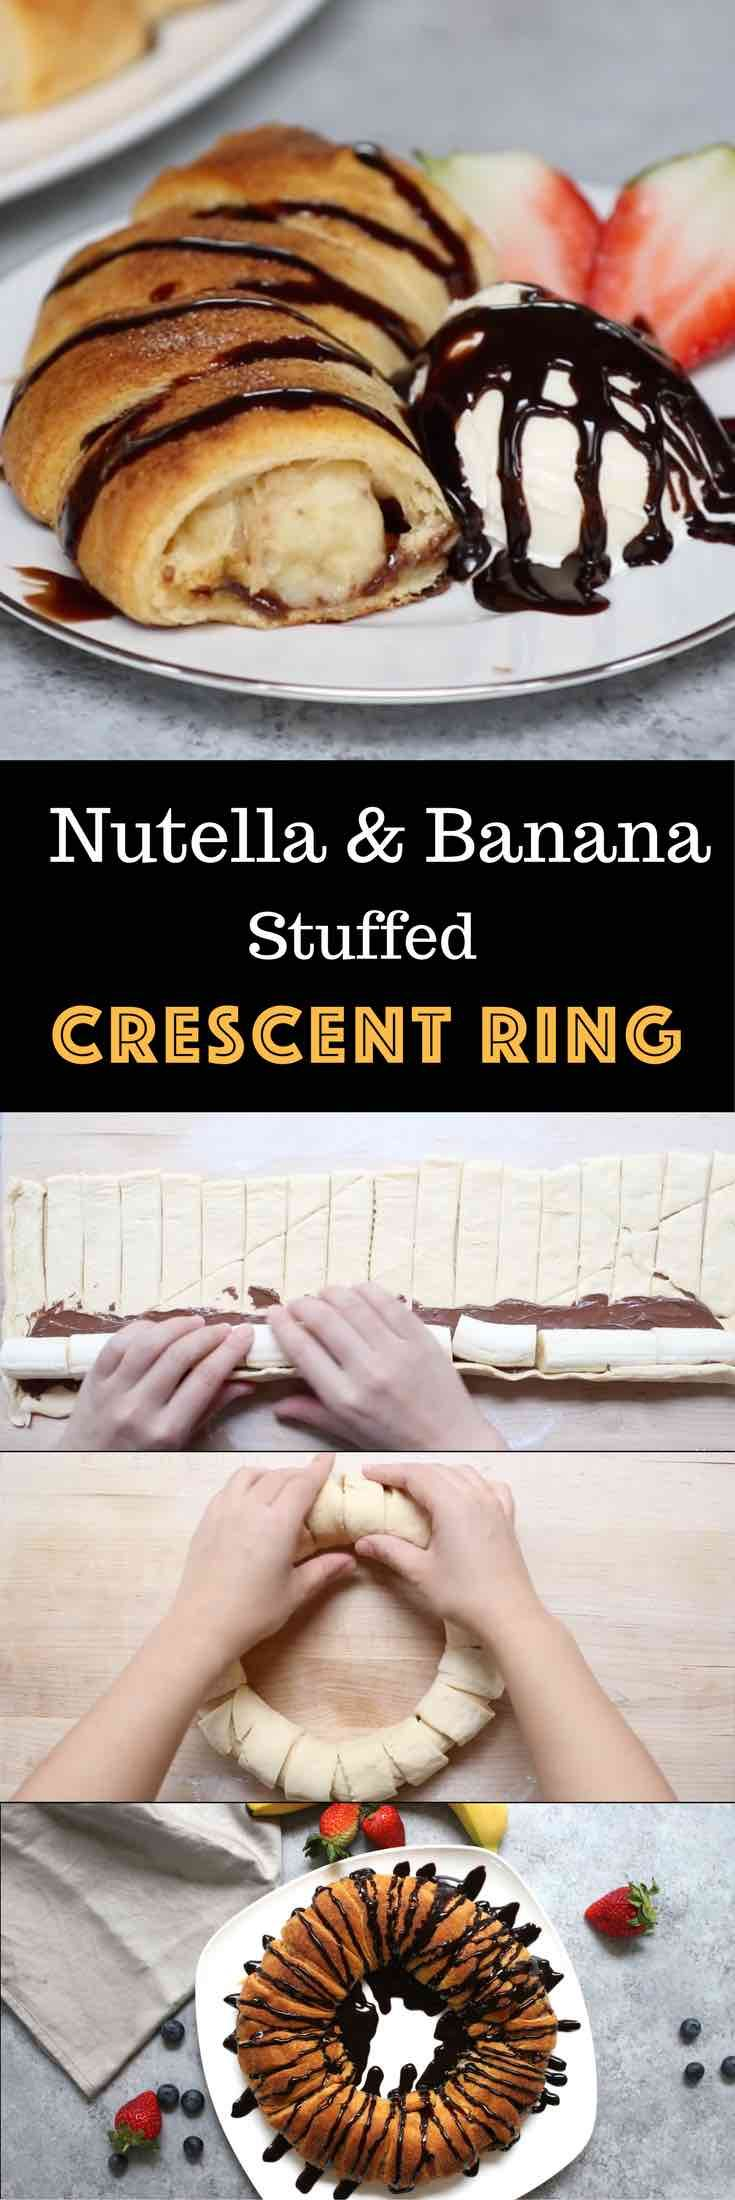 This beautiful Nutella And Banana Stuffed Crescent Rolls Ring will be everyone's favorite dessert choice. Stuff a crescent roll with Nutella and banana, then sprinkle cinnamon sugar, and bake! Drizzle with chocolate and serve with ice cream. Perfect for brunch as well. So good! Quick and easy recipe. Video recipe. | Tipbuzz.com